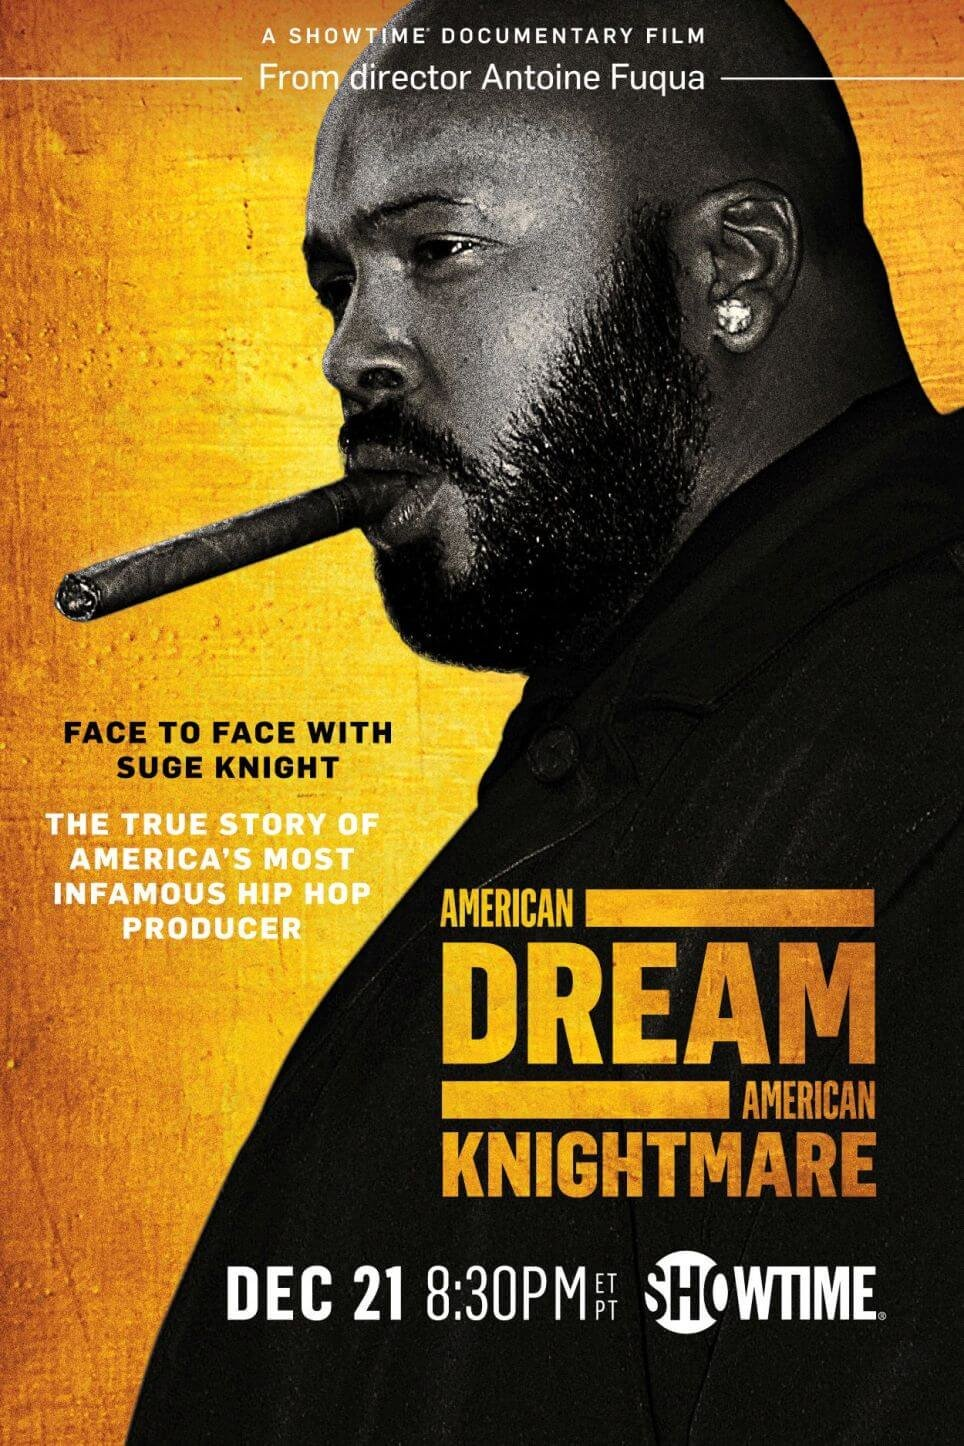 SUGE KNIGHT: AMERICAN DREAM AMERICAN KNIGHTMARE